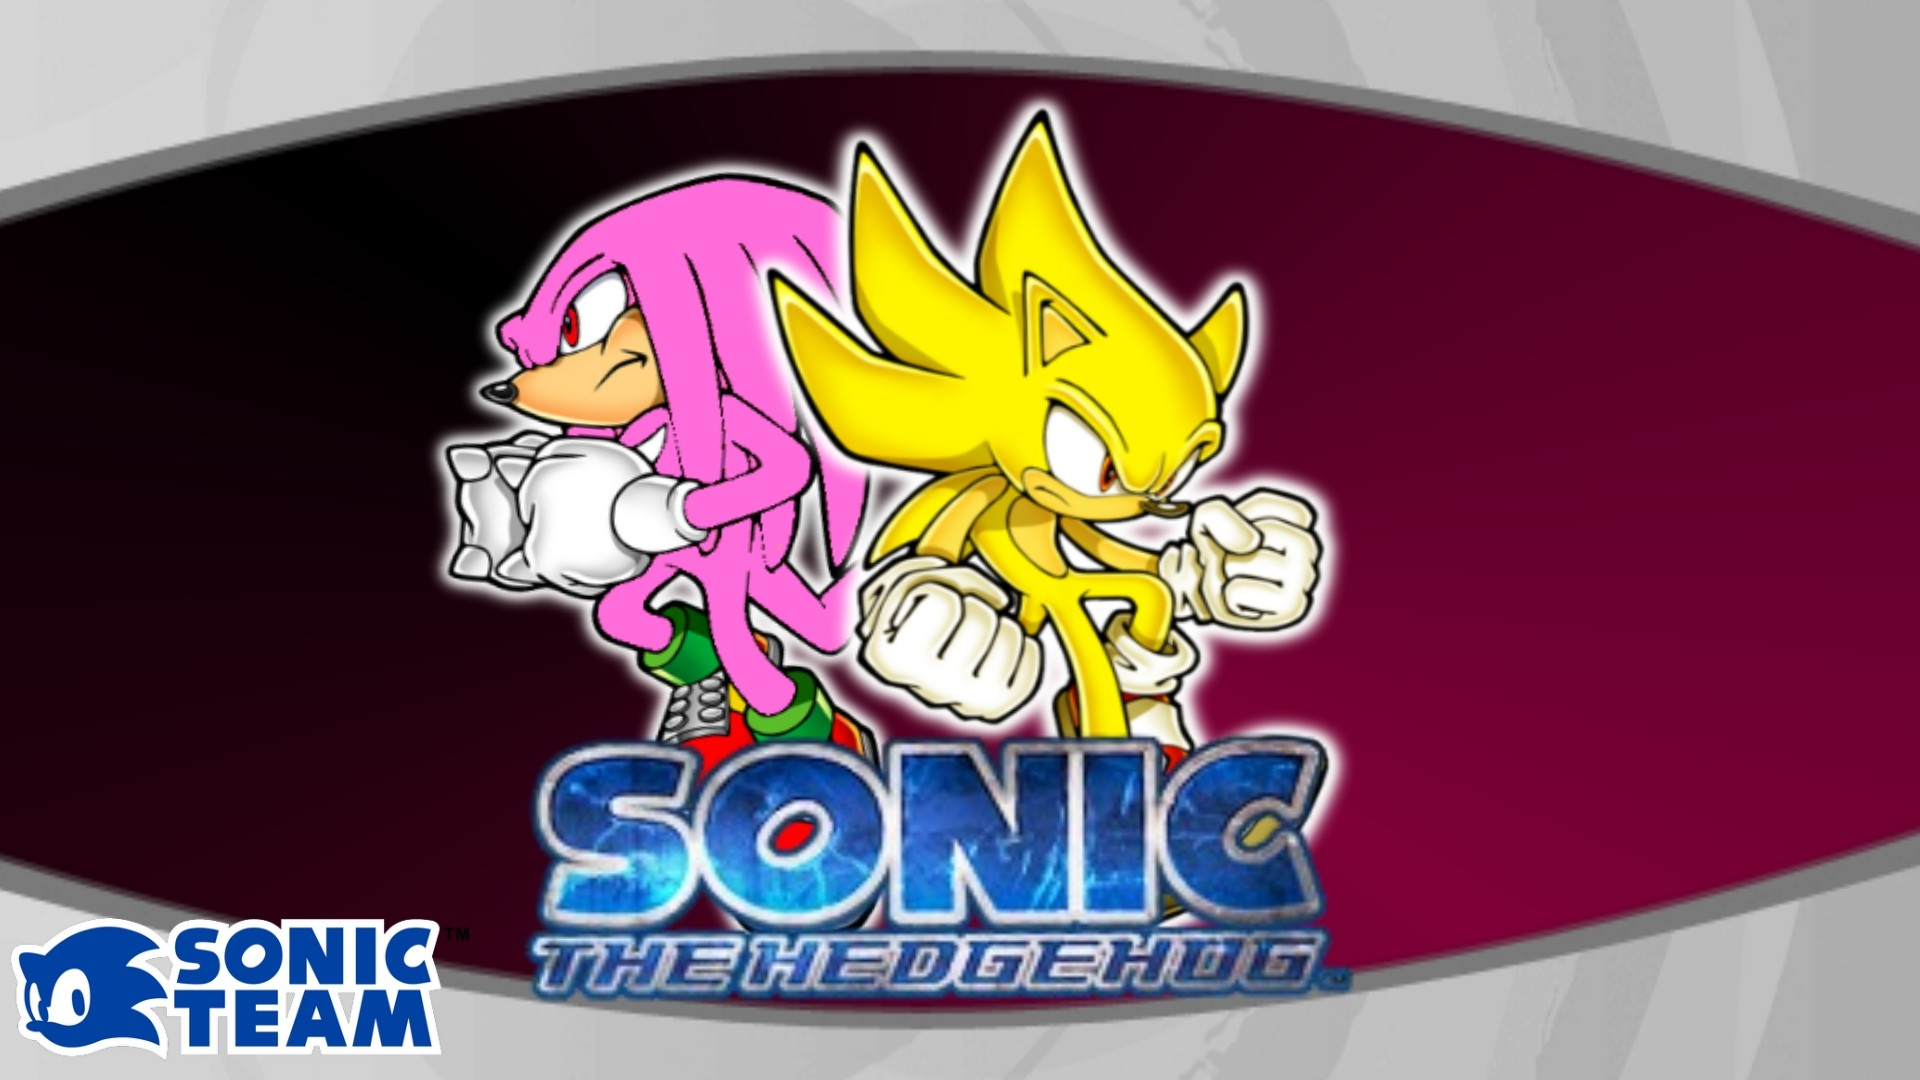 1920x1080 Super Shadow .:Wallpaper:. by Sonitles on DeviantArt | Sonic .